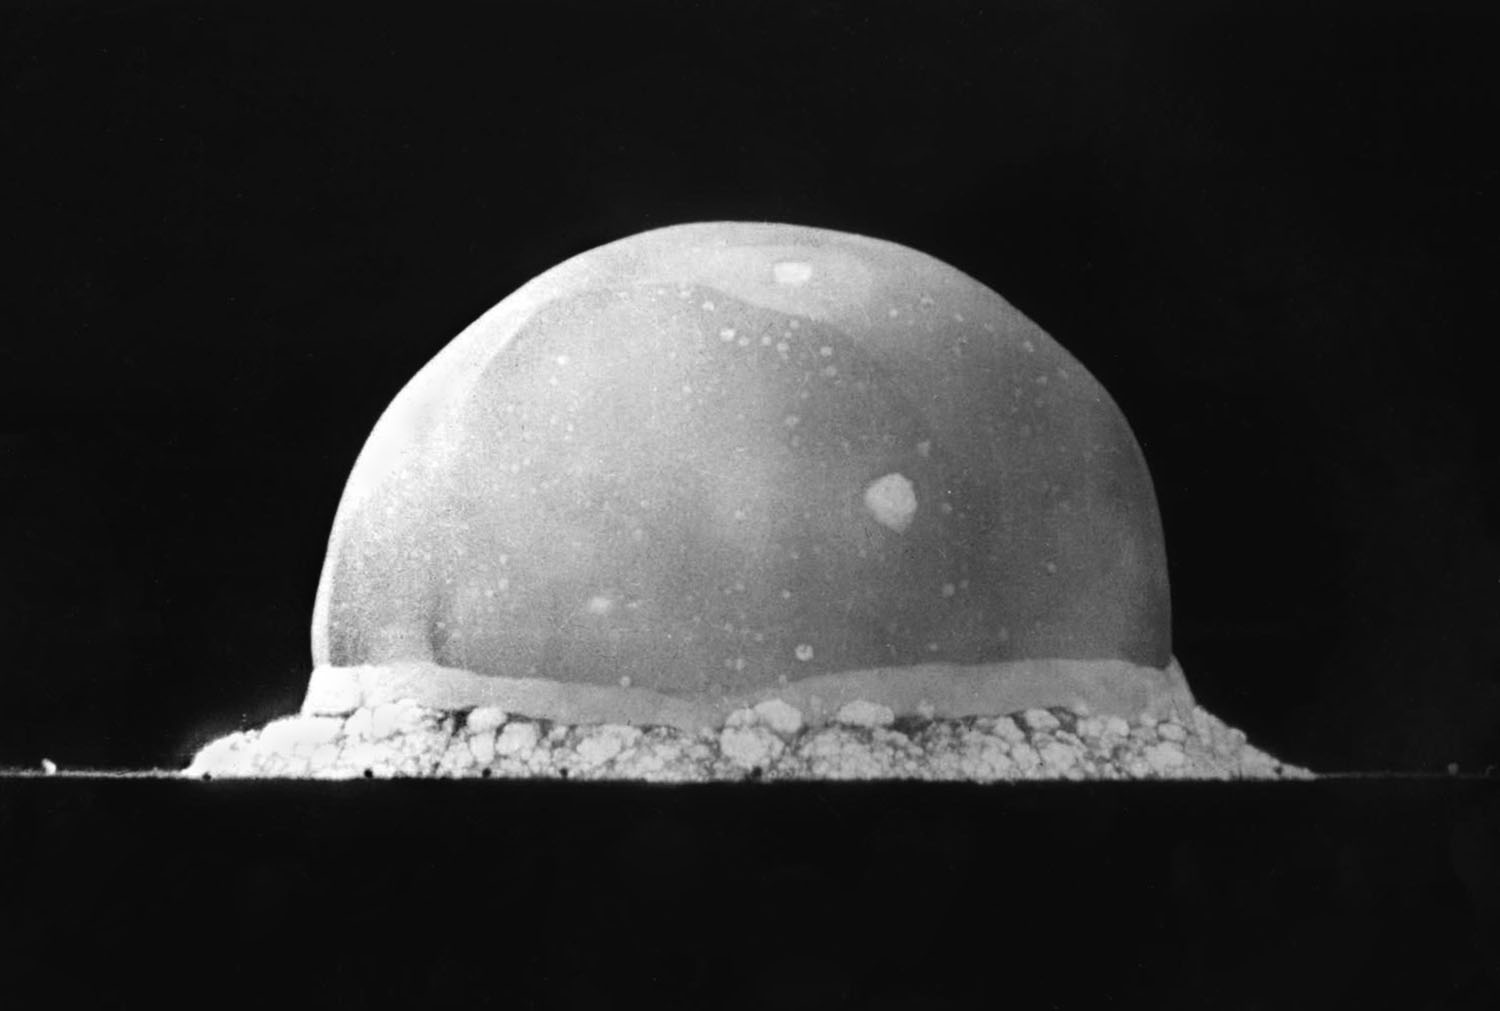 The Trinity explosion, 16 ms after detonation. The viewed hemisphere's highest point in this image is about 200 metres (660 ft) high.